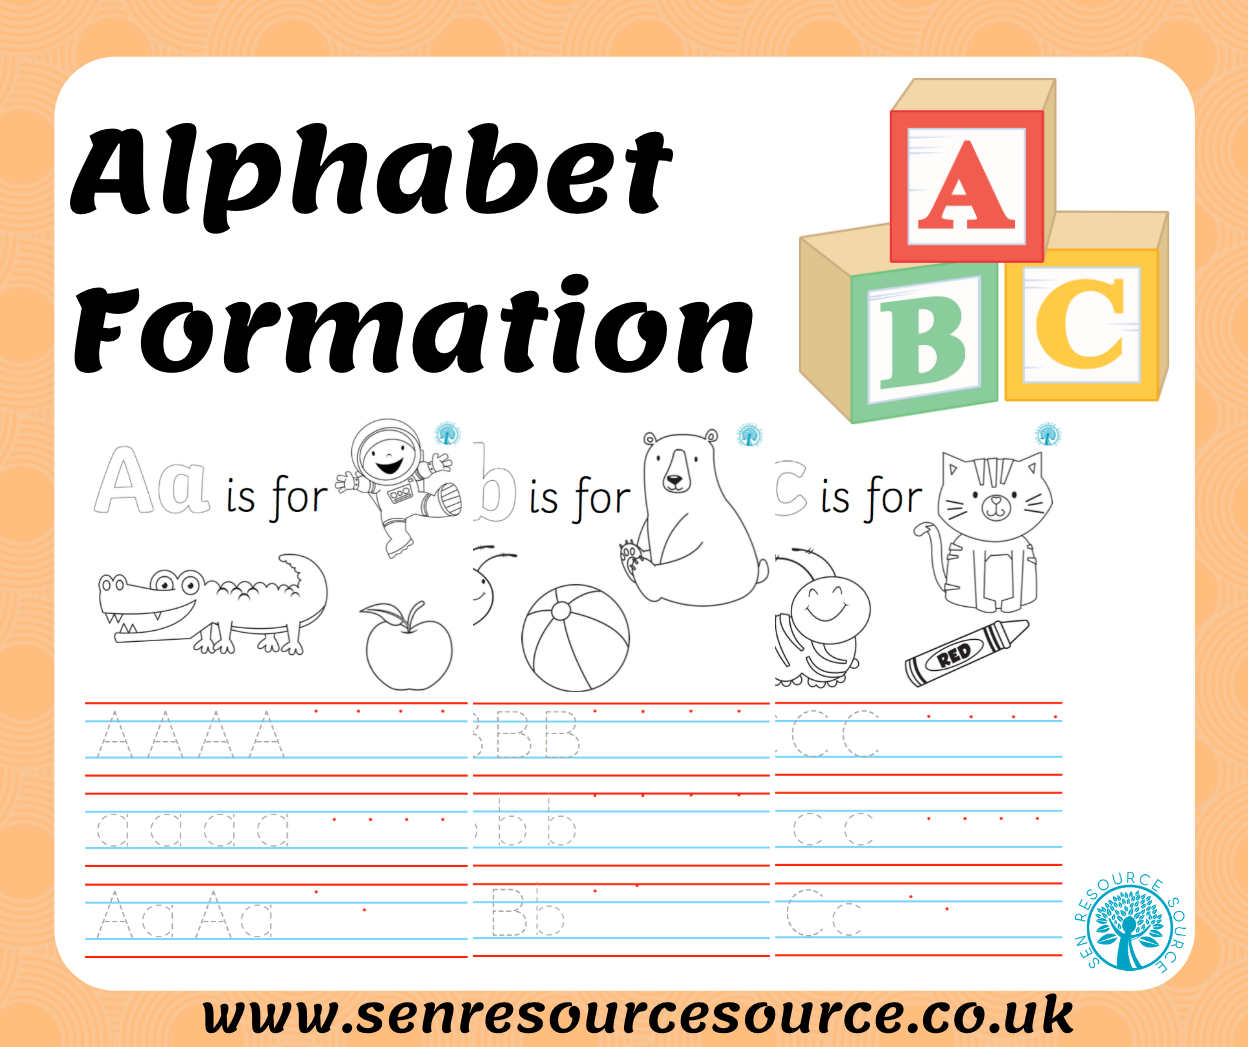 Alphabet Formation Handwriting Sheets with Alphabet Handwriting Worksheets Uk